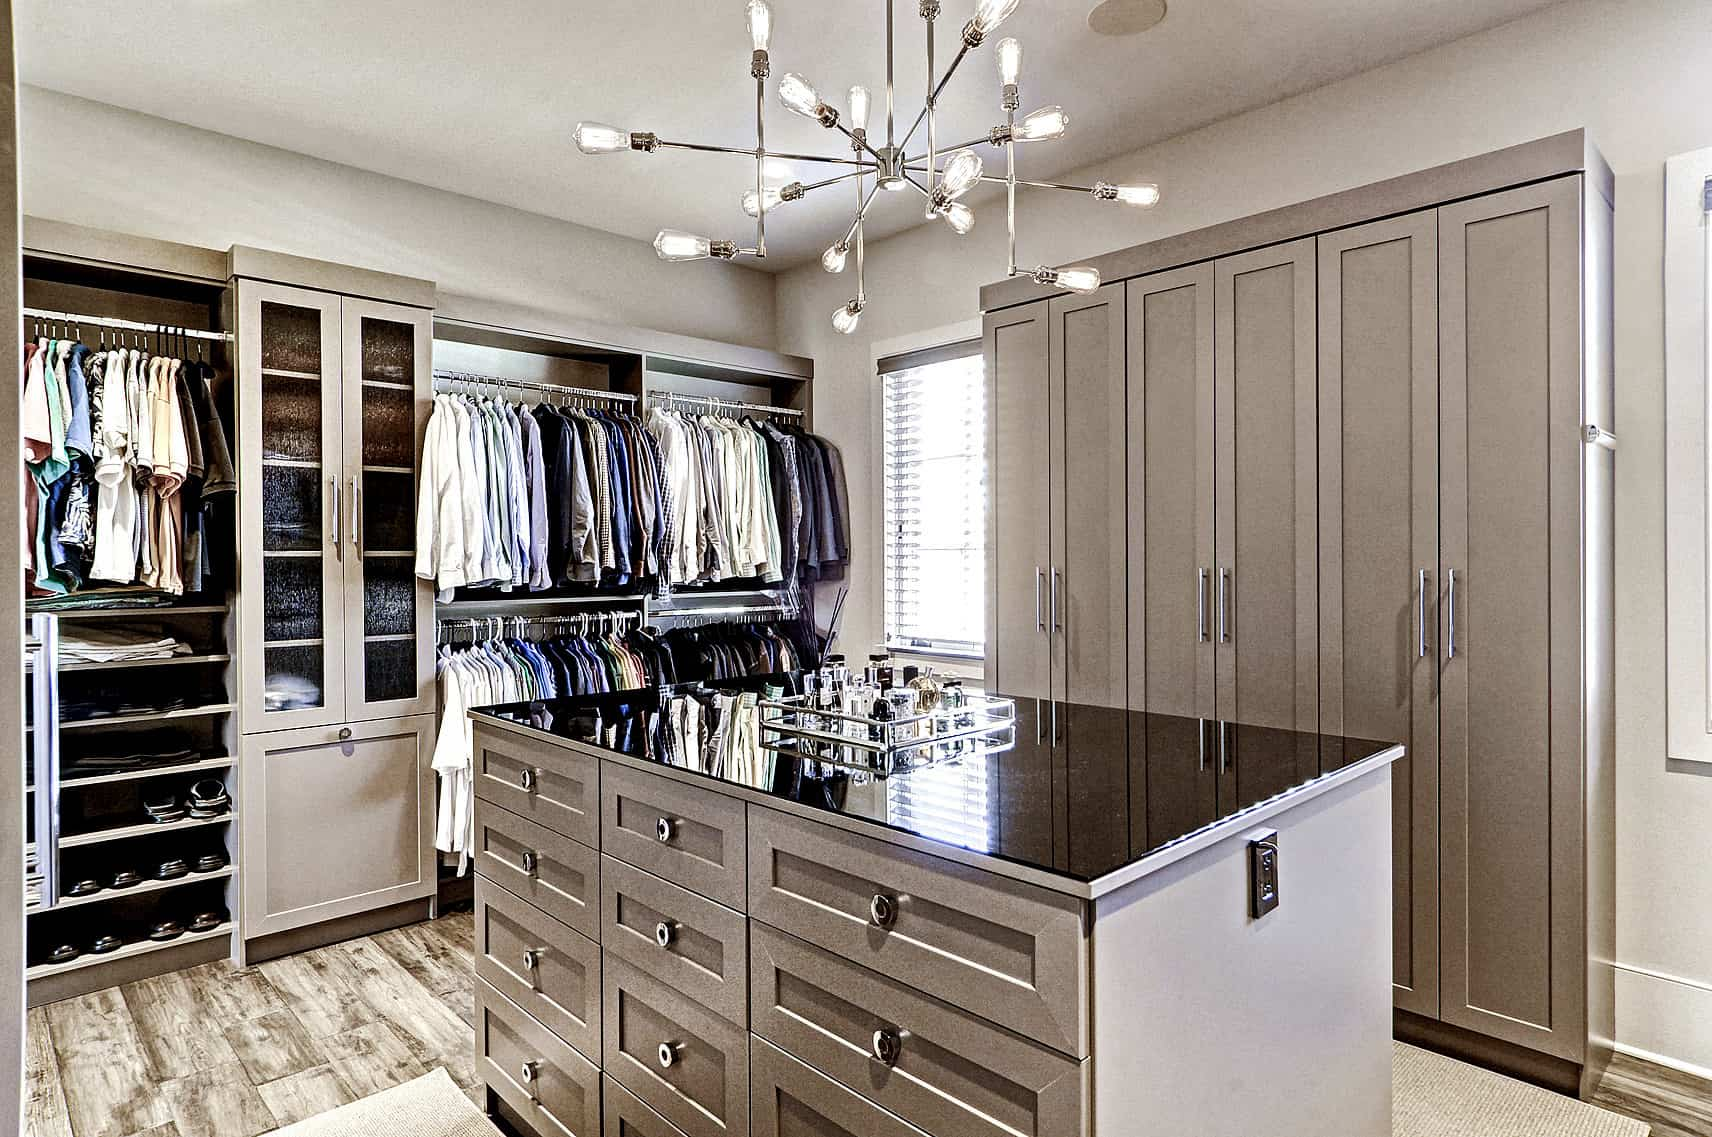 Drenched in milk-coffee color, this walk-in closet is brimming with elegance and is best suited for anyone who wants the maximum space for containing various items.